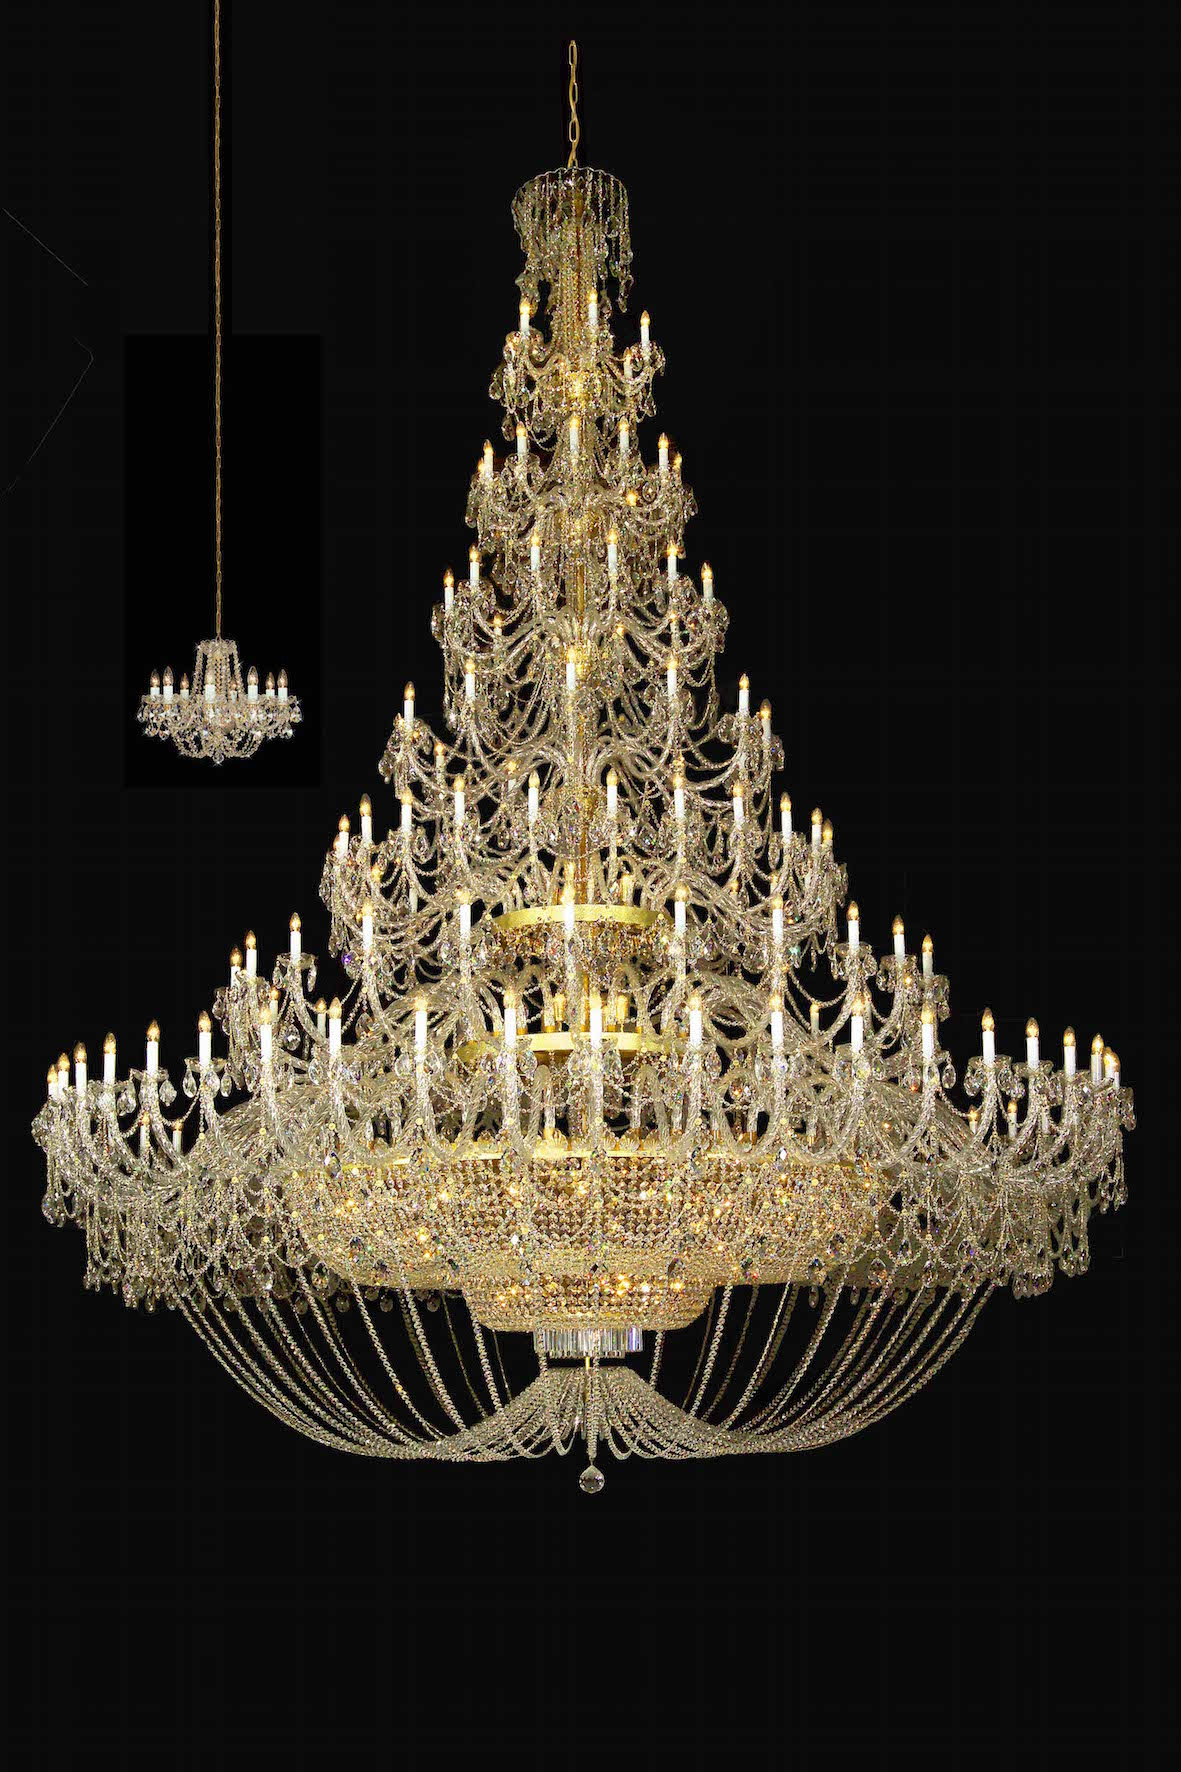 The big chandelier news quality czech crystal chandeliers and velk lustr 1 aloadofball Image collections